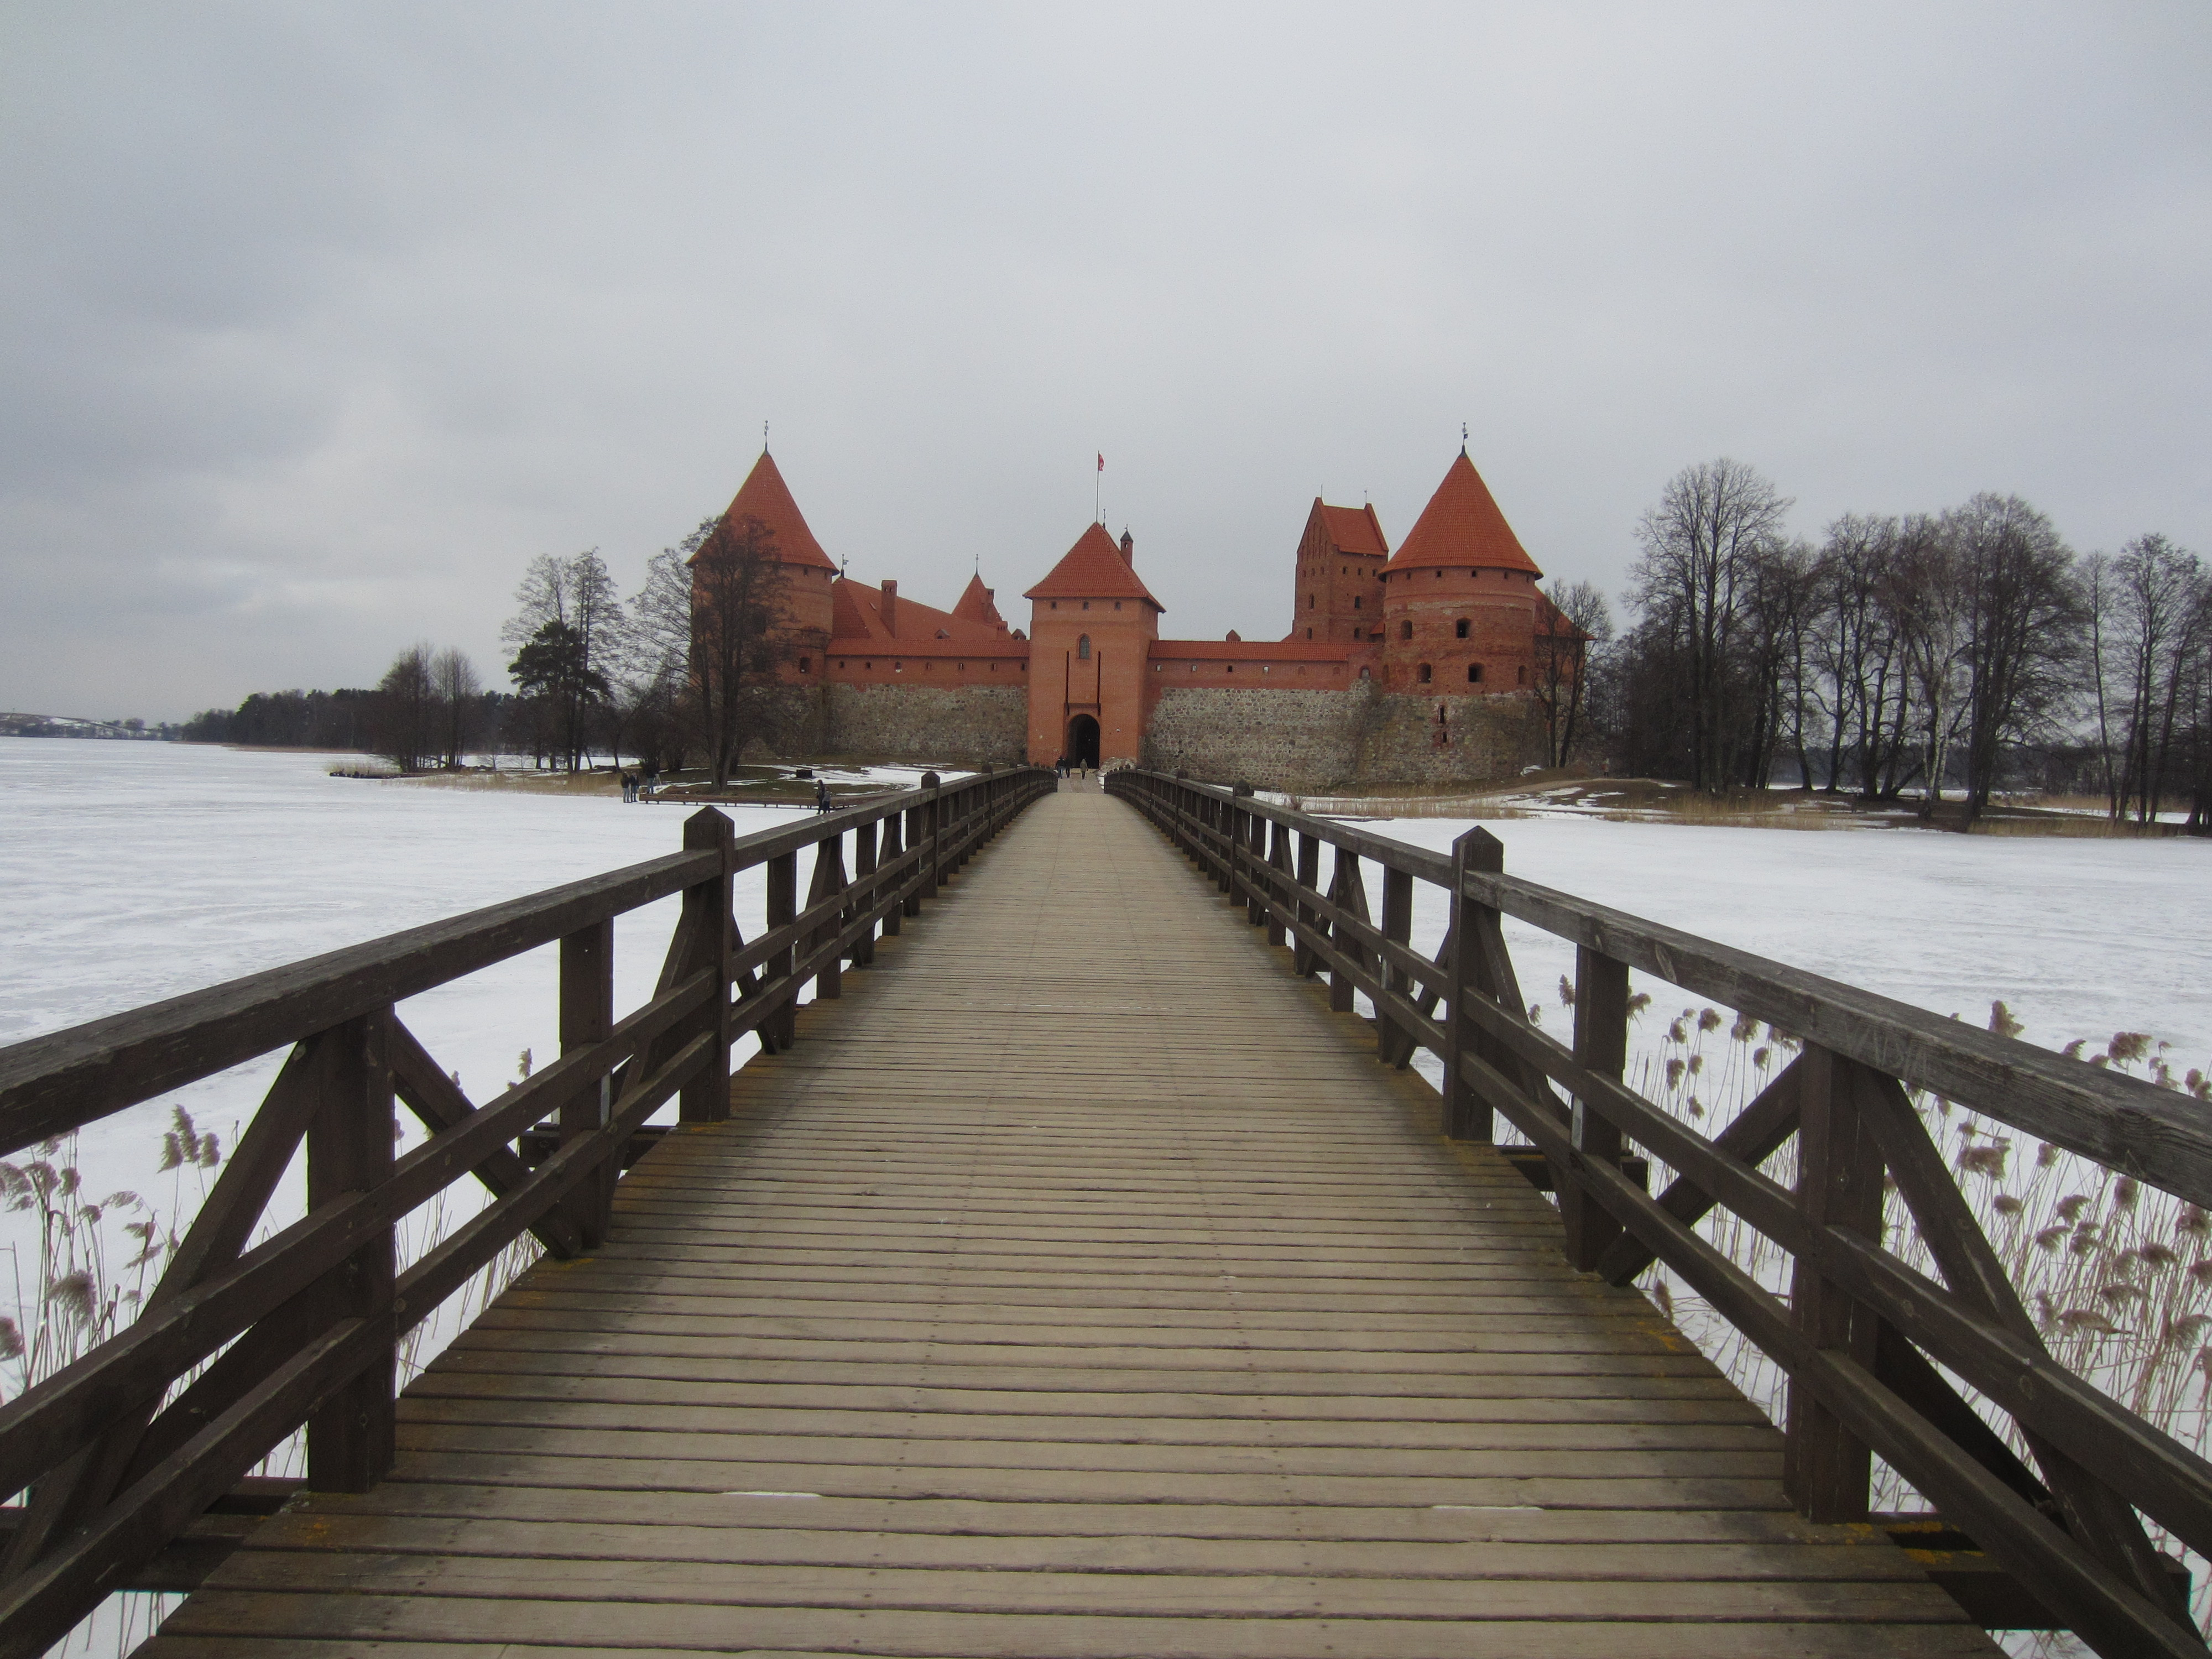 trakai single guys We look forward to showing you more of the world for  the kgb museum and excursion to trakai castle optional  not so much of a surprise since you guys are .